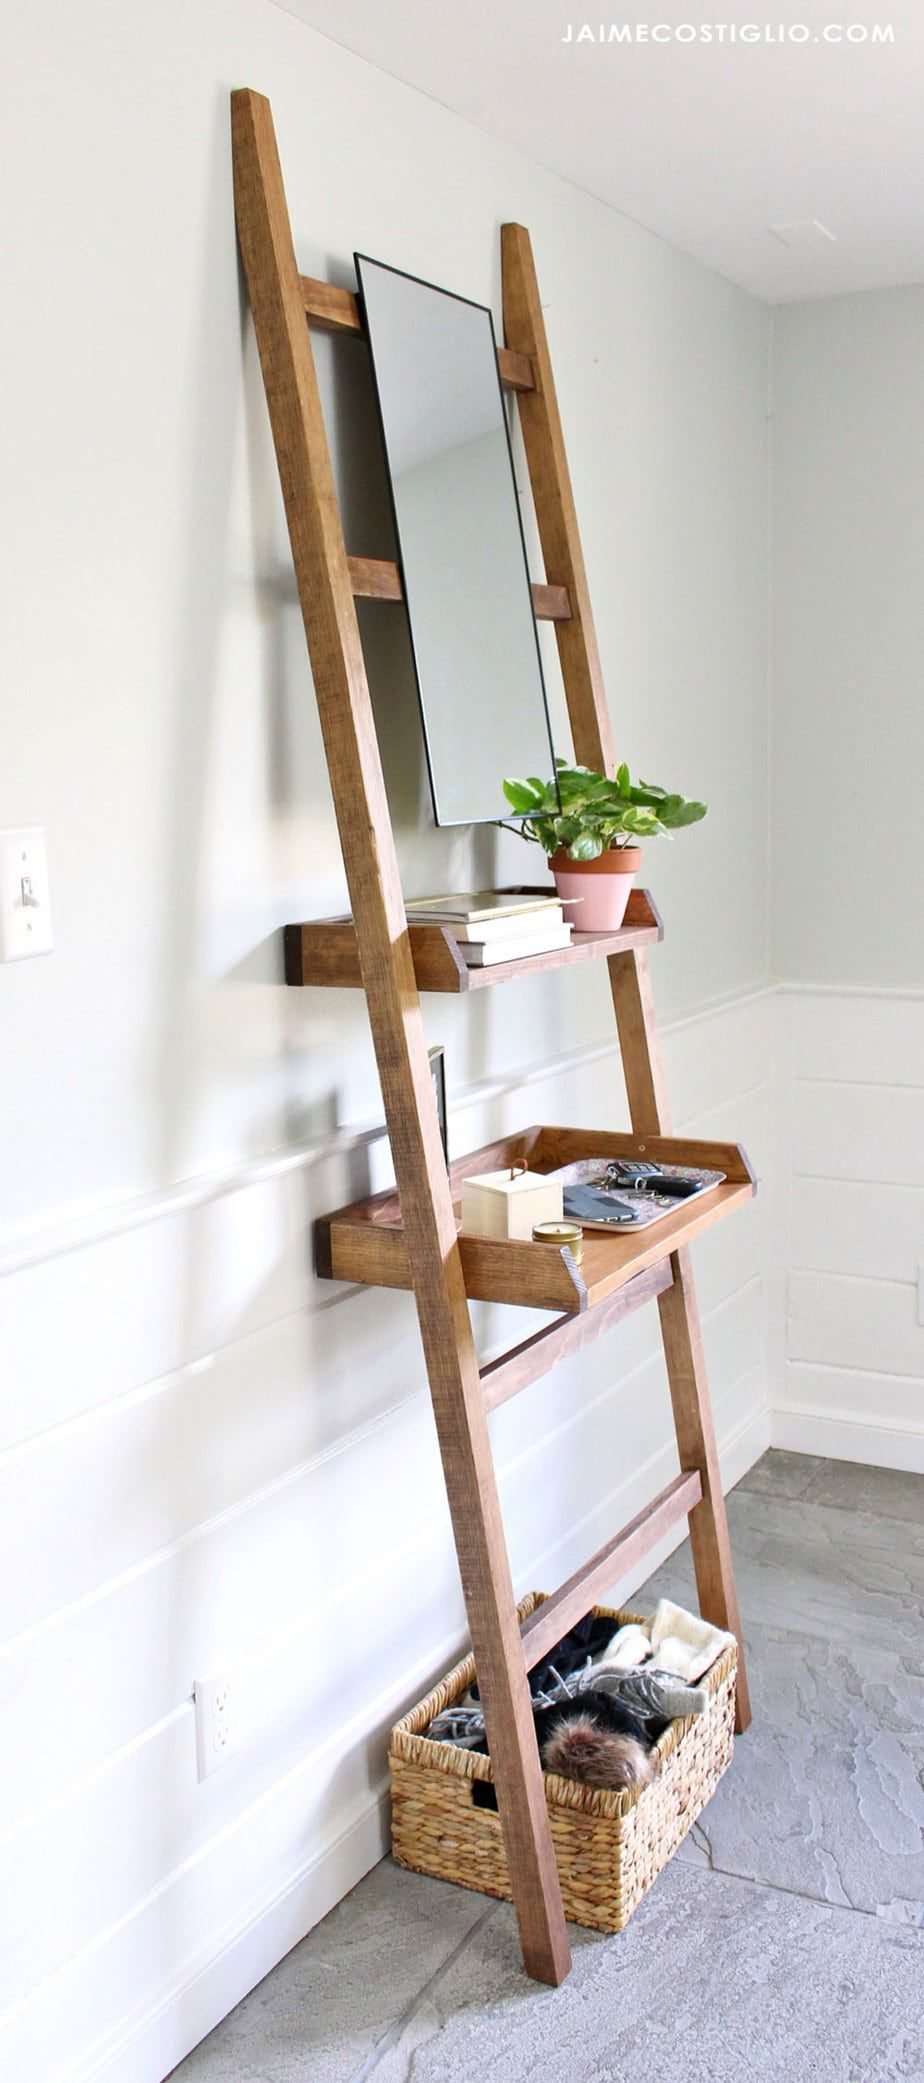 Diy Leaning Shelf For Entry Or Vanity Jaime Costiglio Leaning Shelf Shelves Easy Woodworking Projects